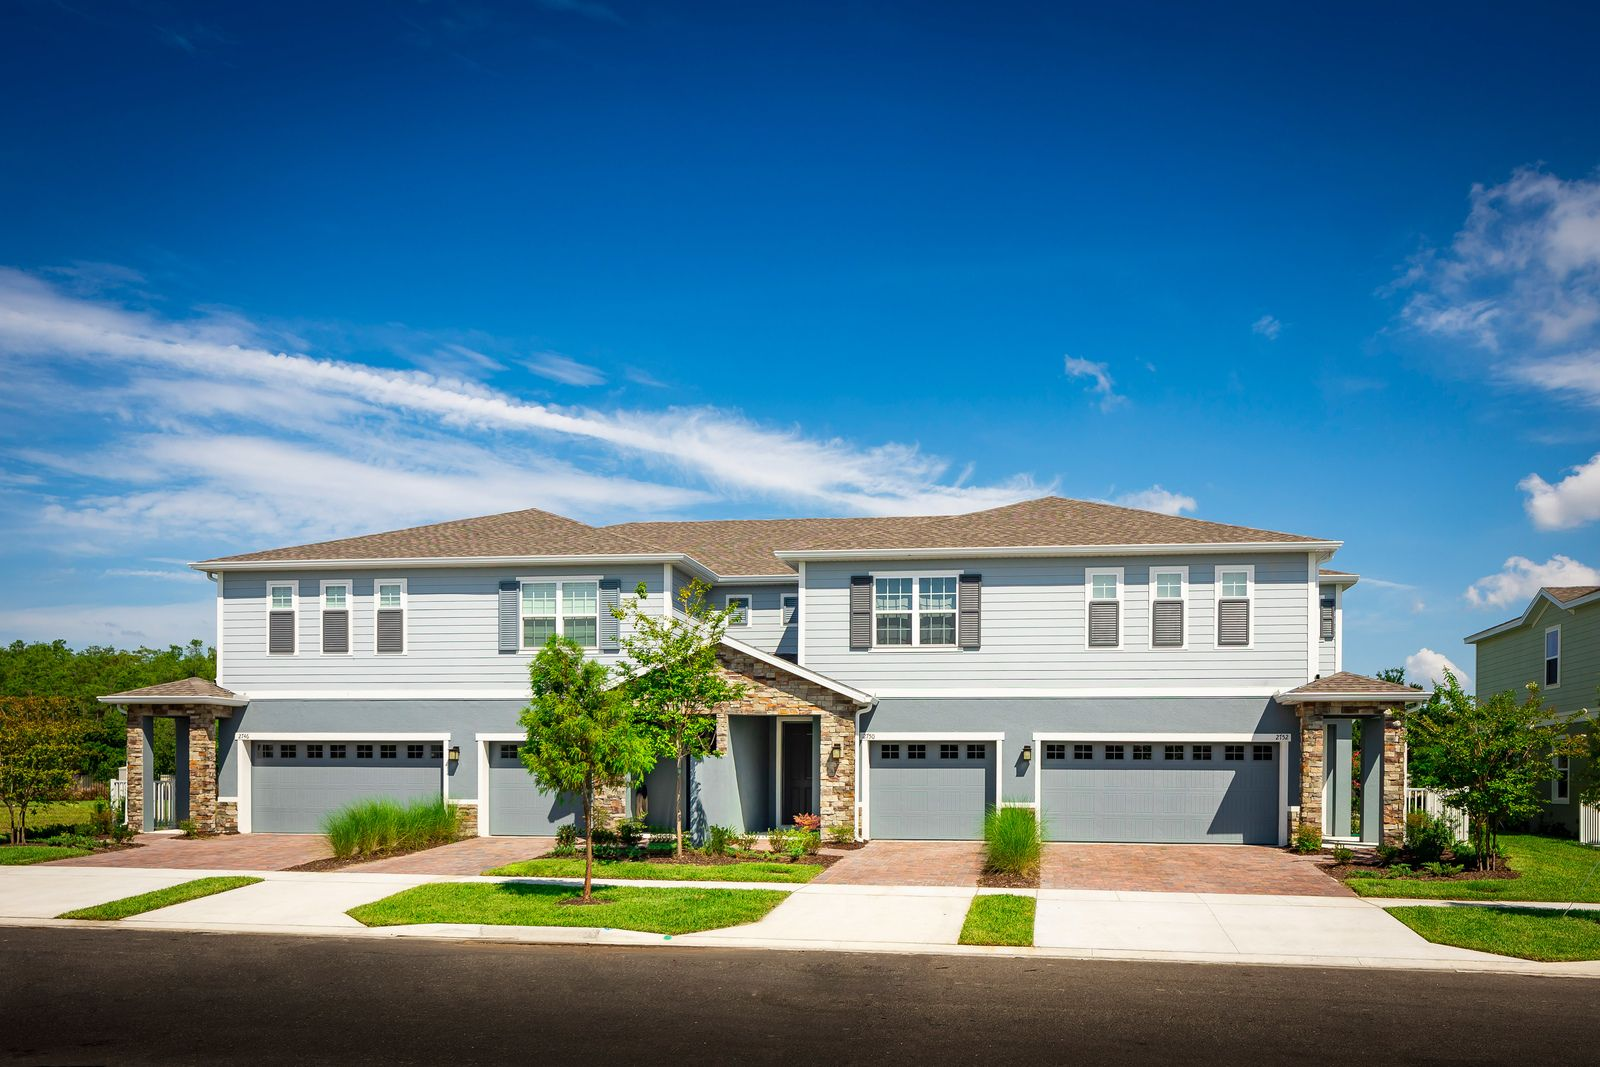 Welcome to Cypress Ridge!:Affordable, resort-style, maintenance-free townhome living in a prime location with NO CDD and appliances included. Starting from the $250s.Schedule your tour today!Se habla Español.